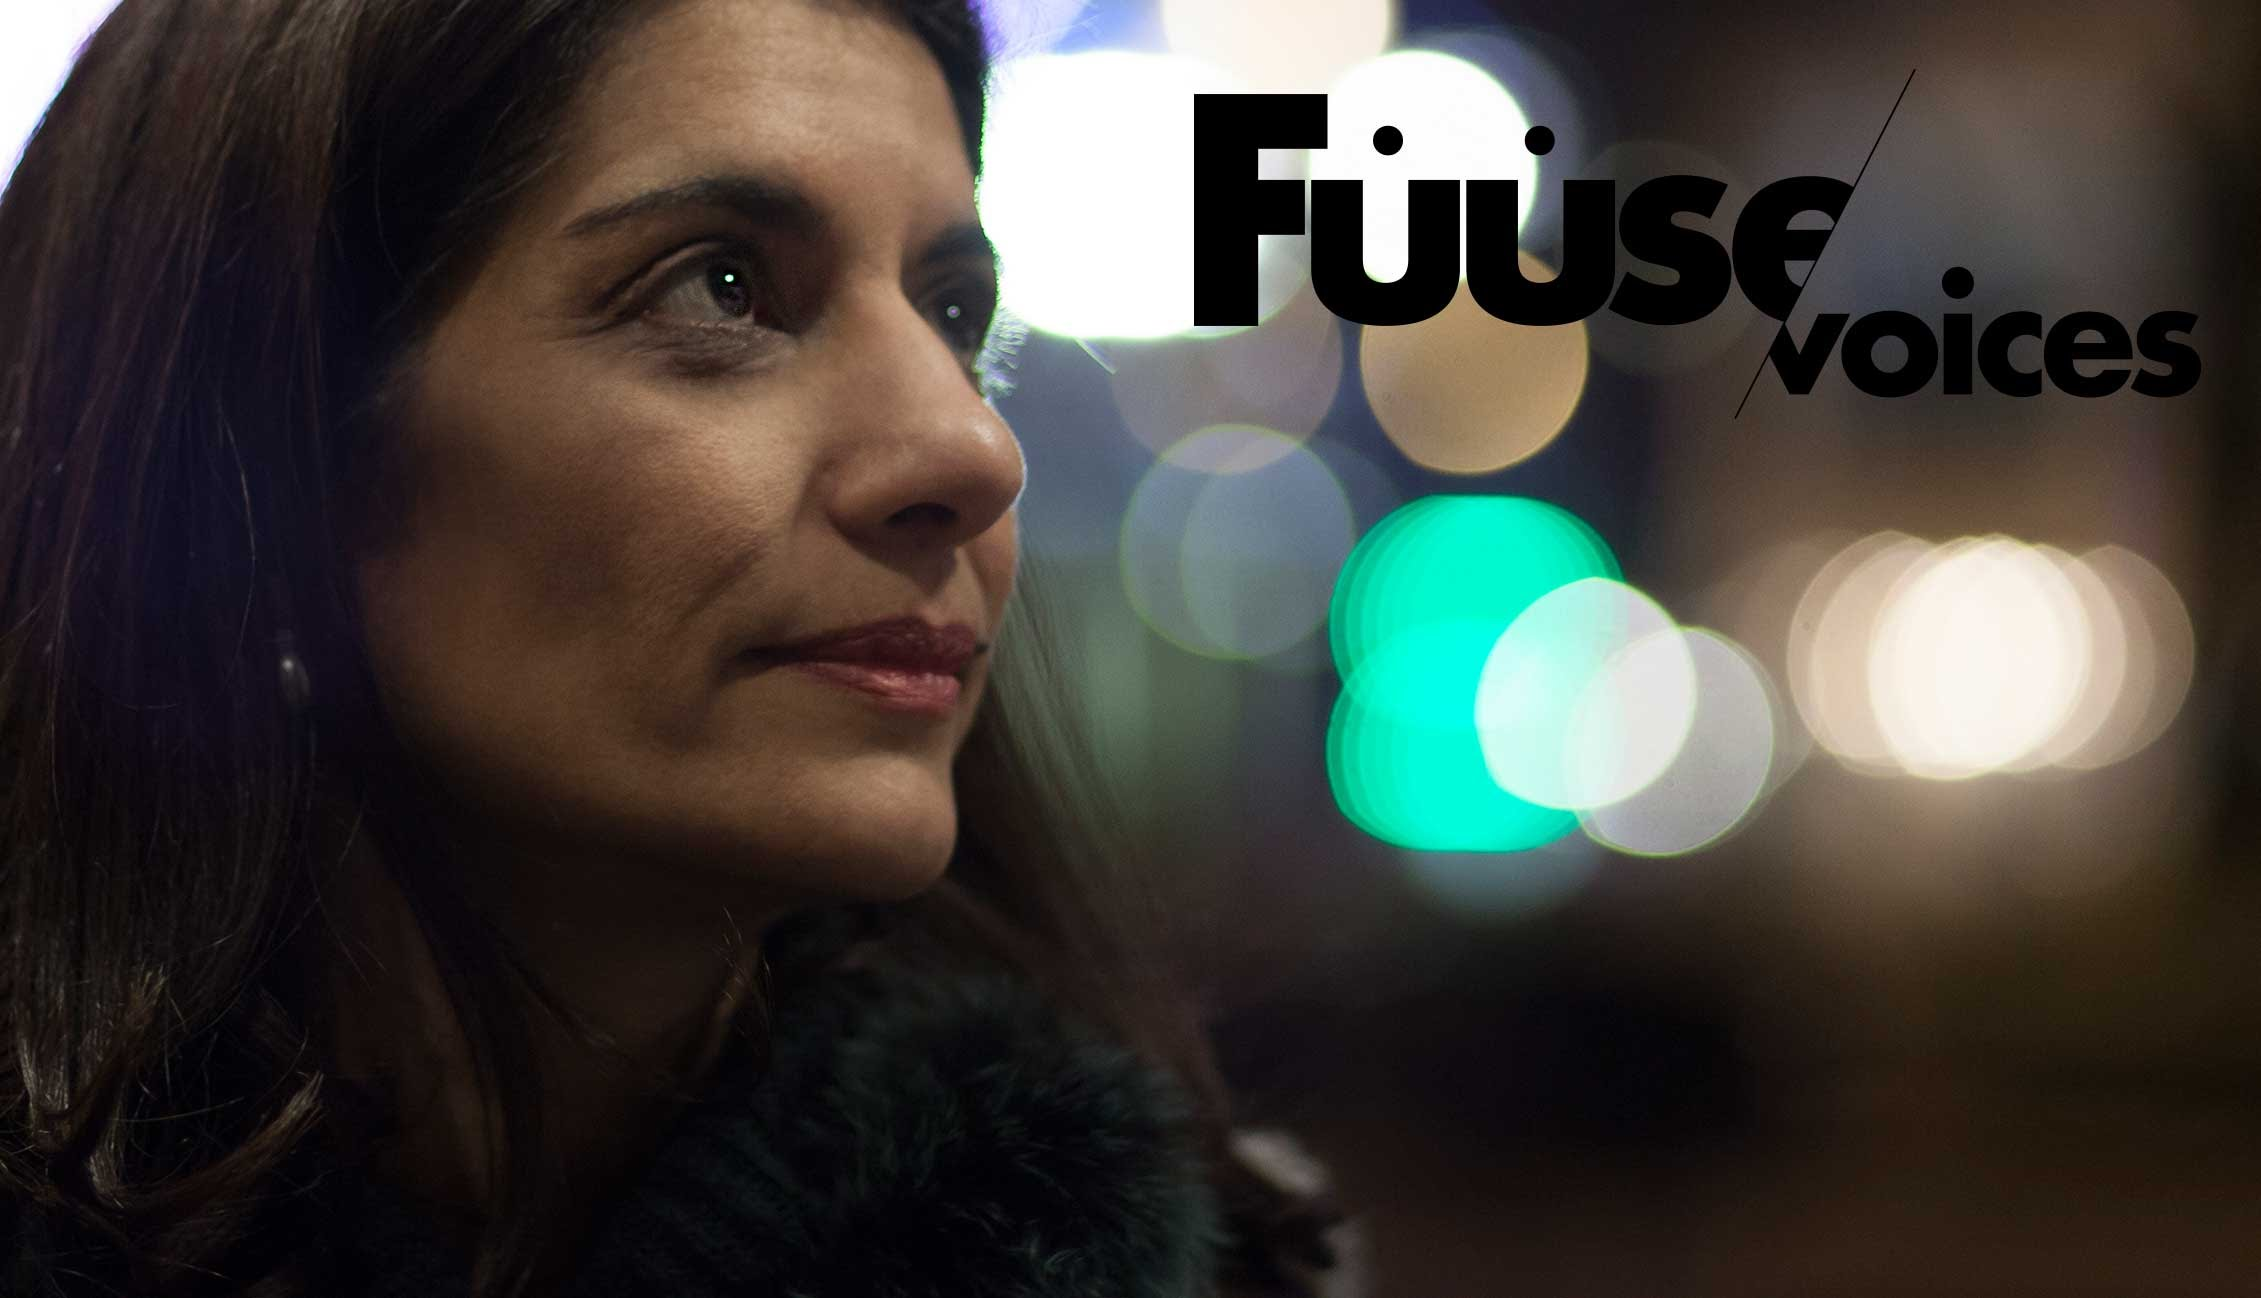 Sanam Naraghi-Anderlini, a video profile by Fuuse